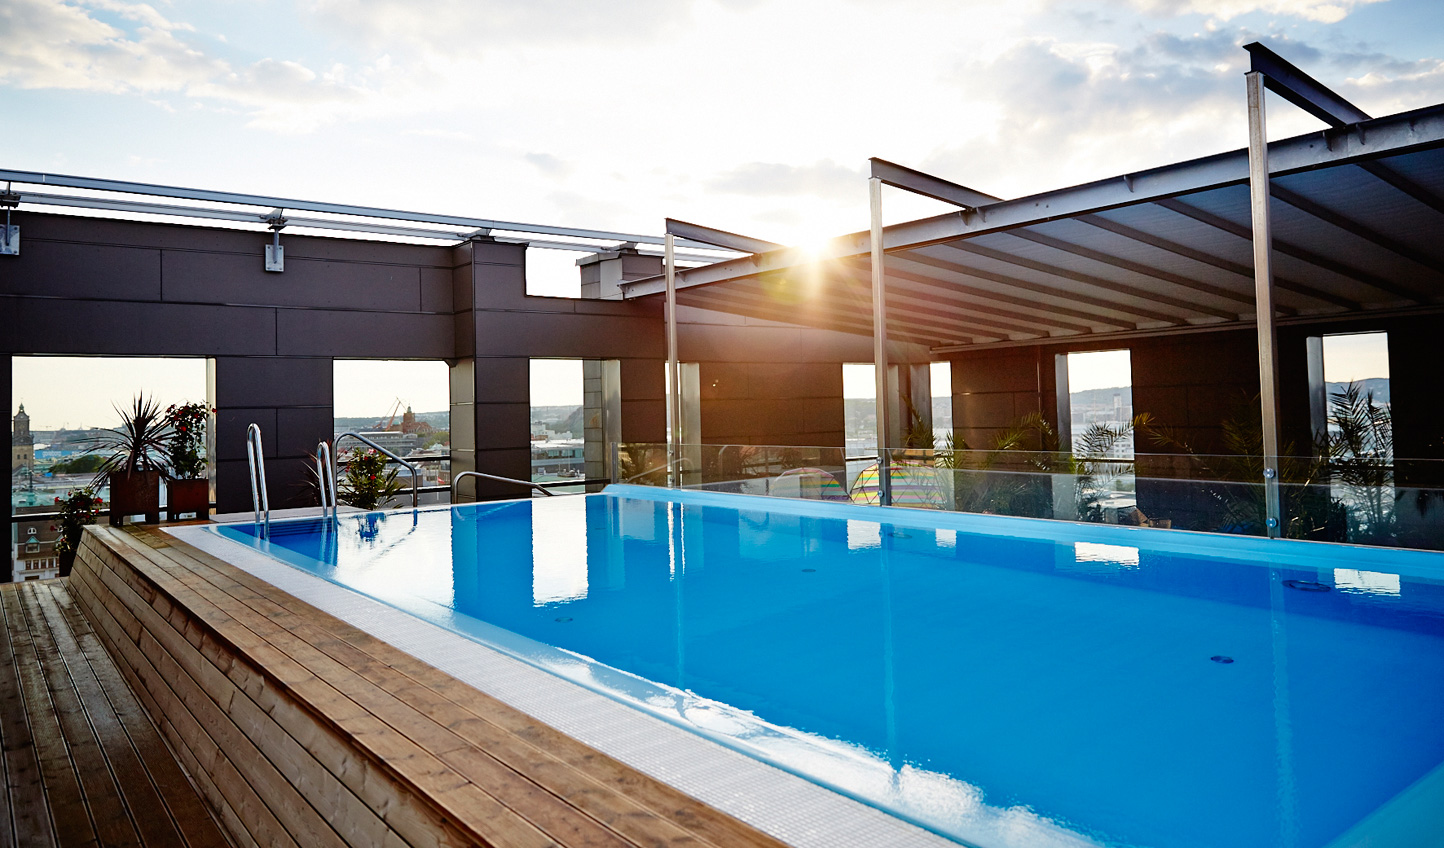 Do a few laps in the rooftop pool